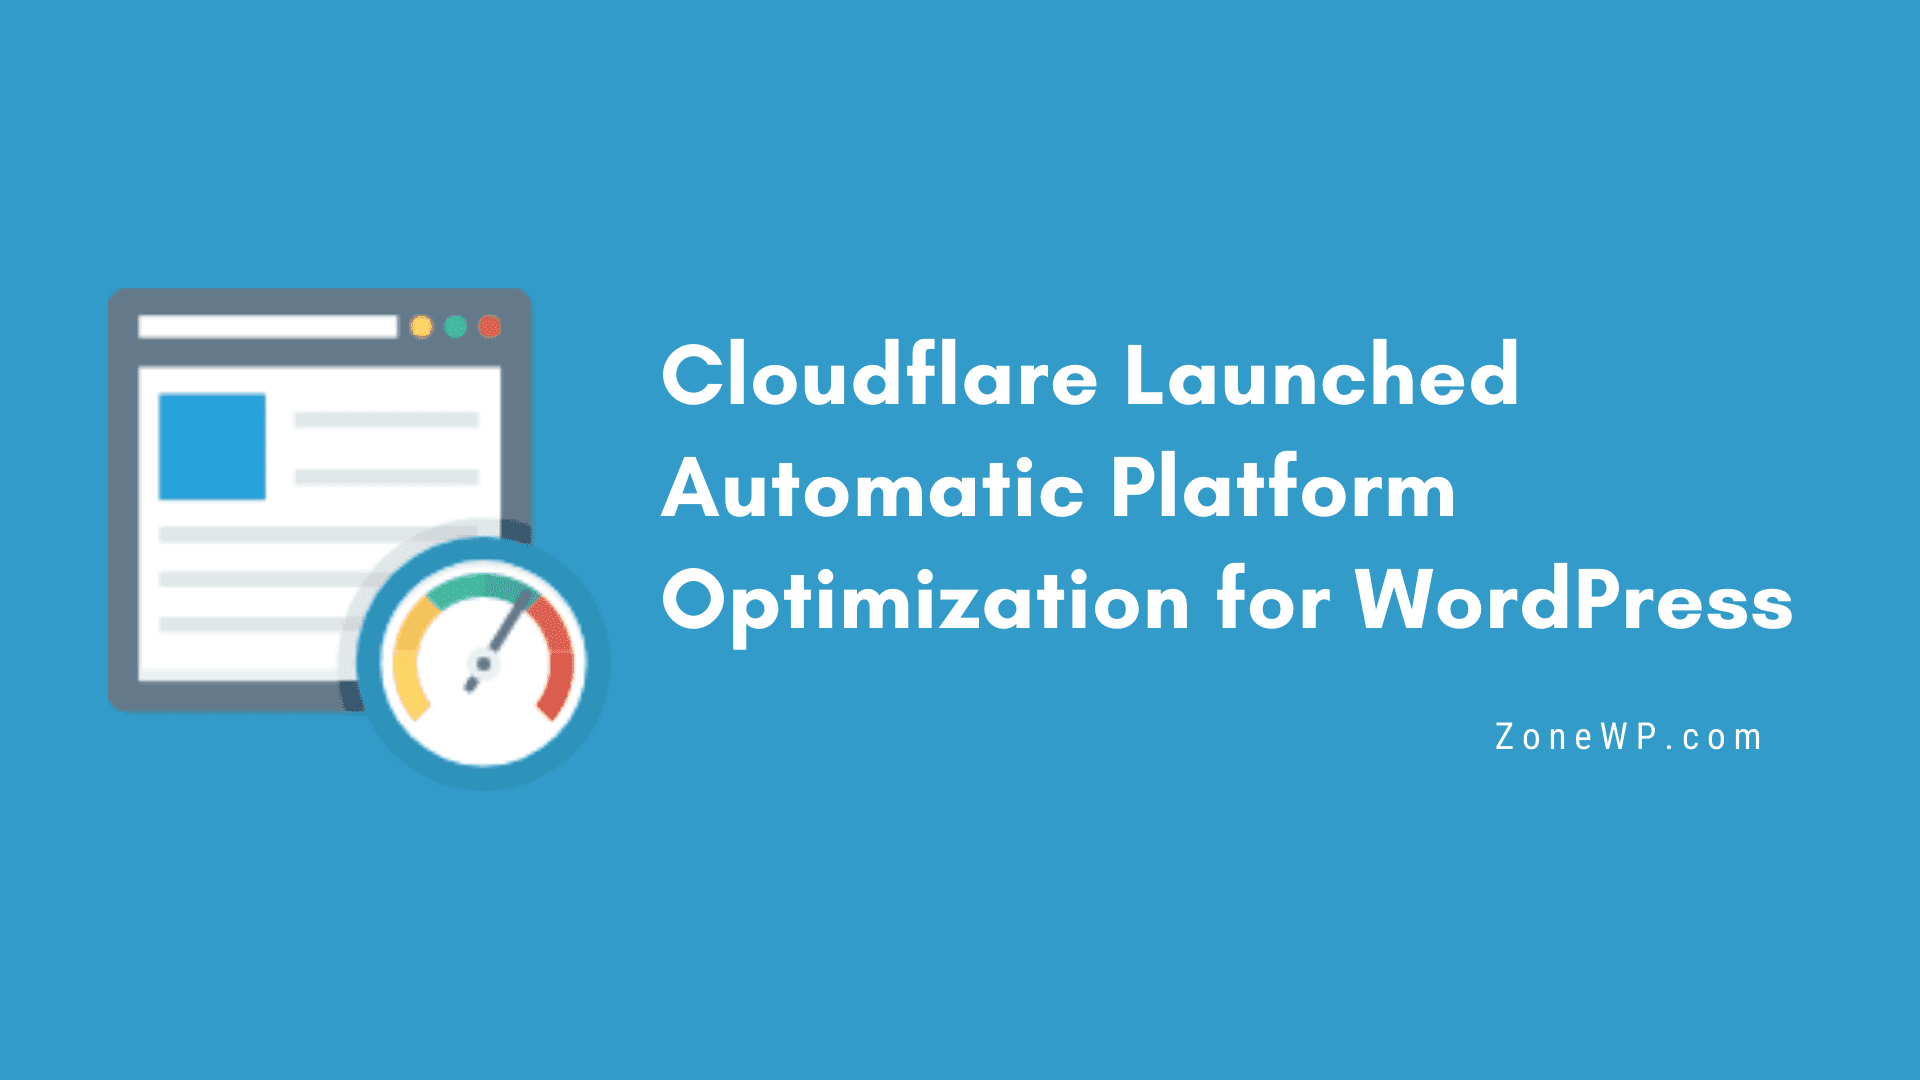 Cloudflare Launched Automatic Platform Optimization for WordPress